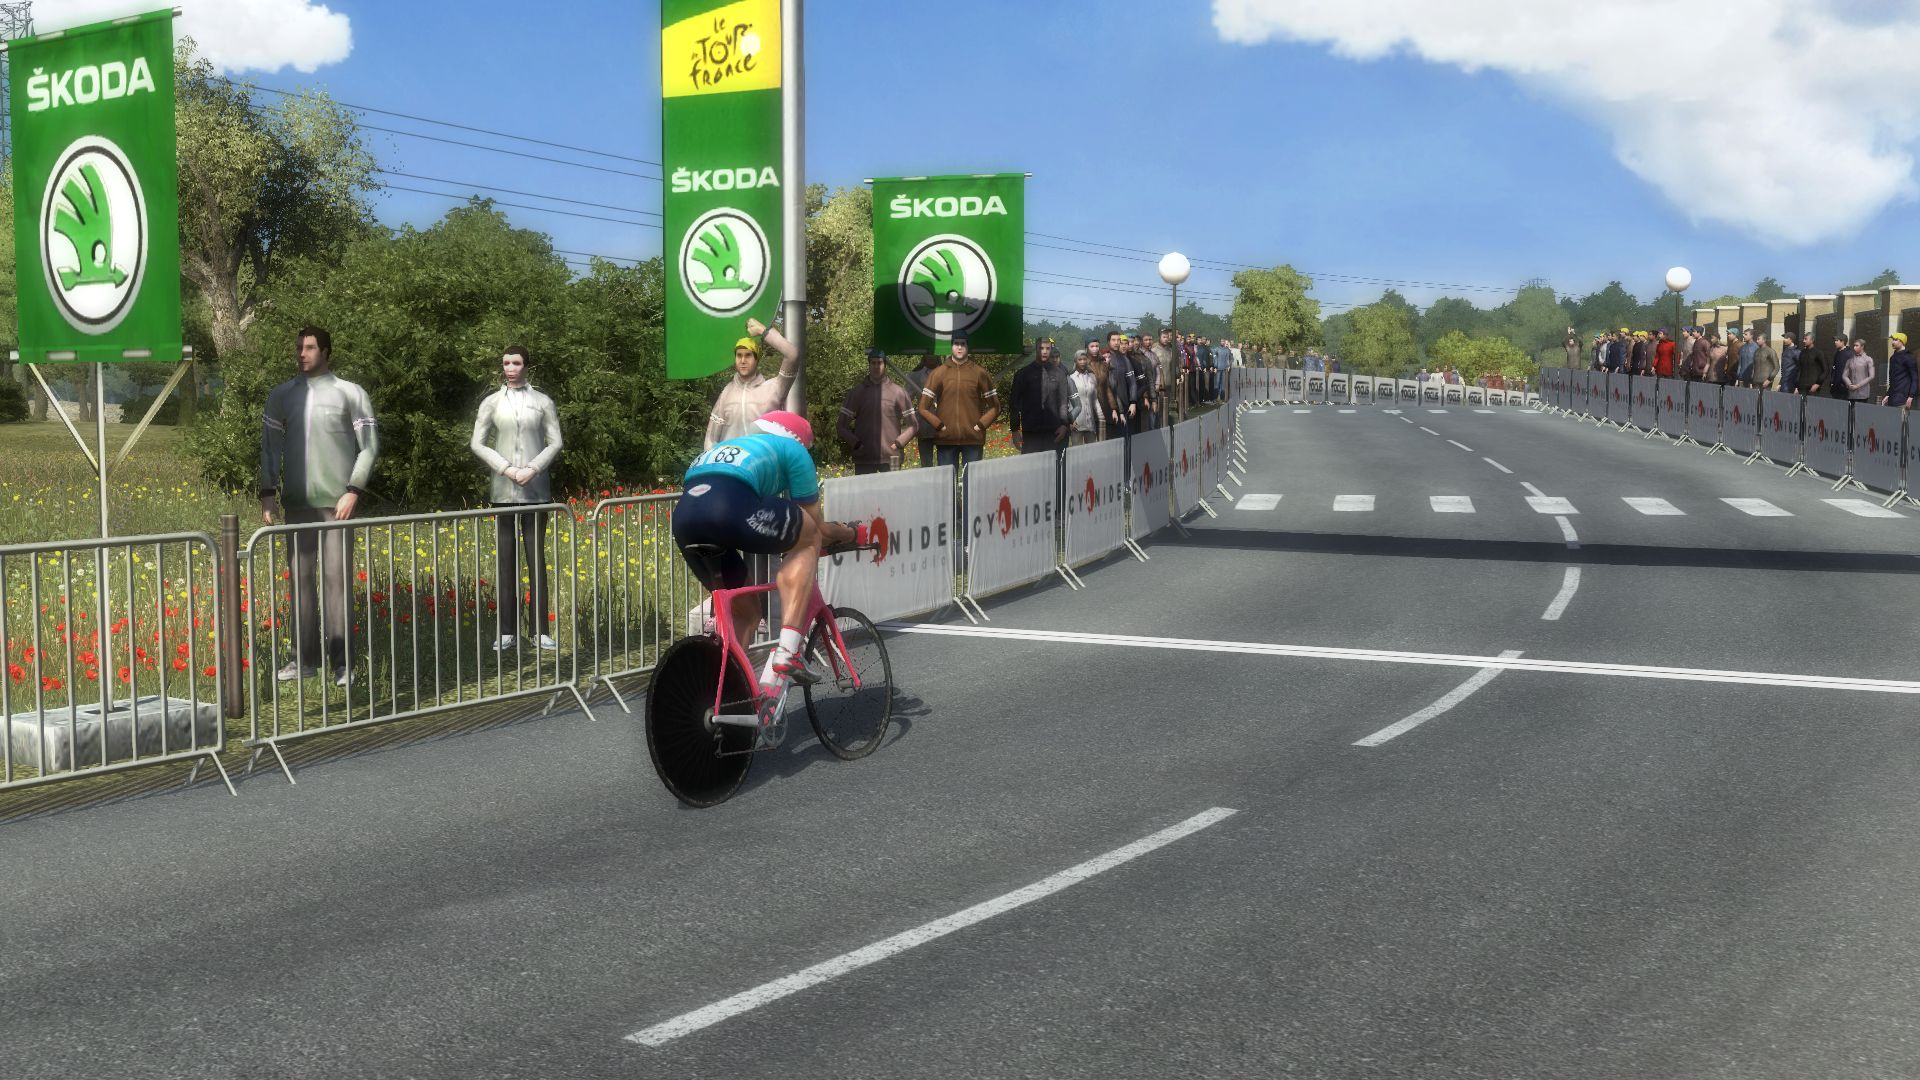 pcmdaily.com/images/mg/2019/Races/HC/Slovenie/mg19_slo_s04_07.jpg